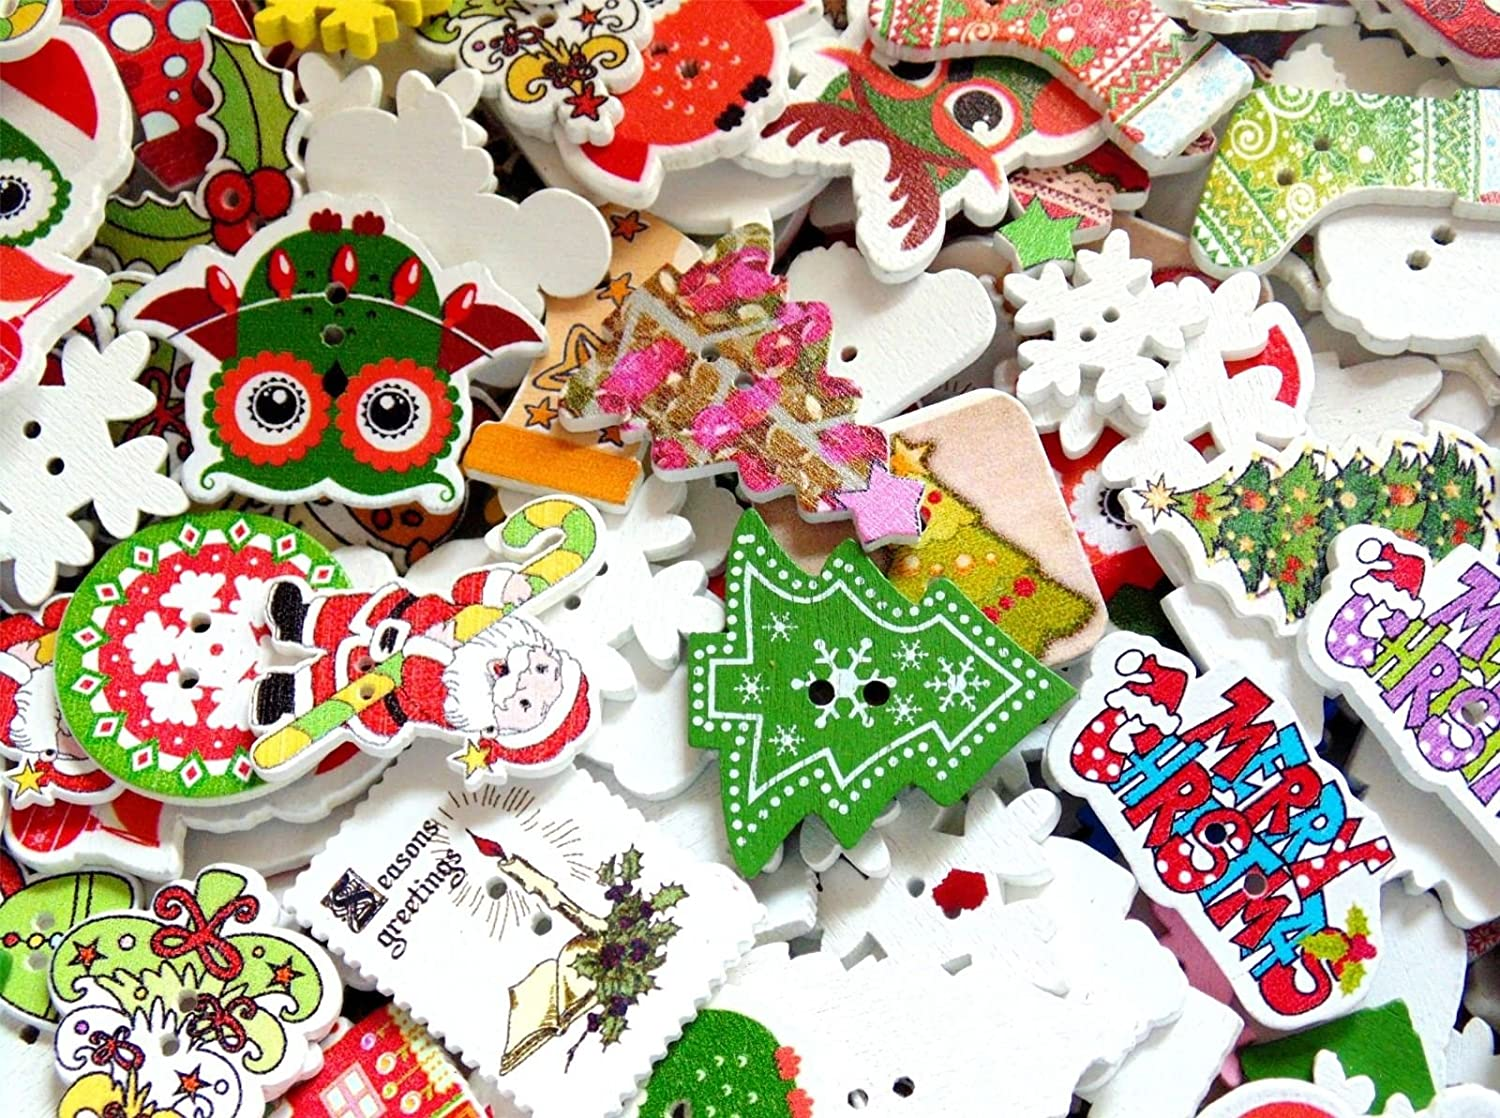 25g Mixed Wooden Christmas Buttons - Stockings Trees Stamps Snowflakes Santa Button Craft UK